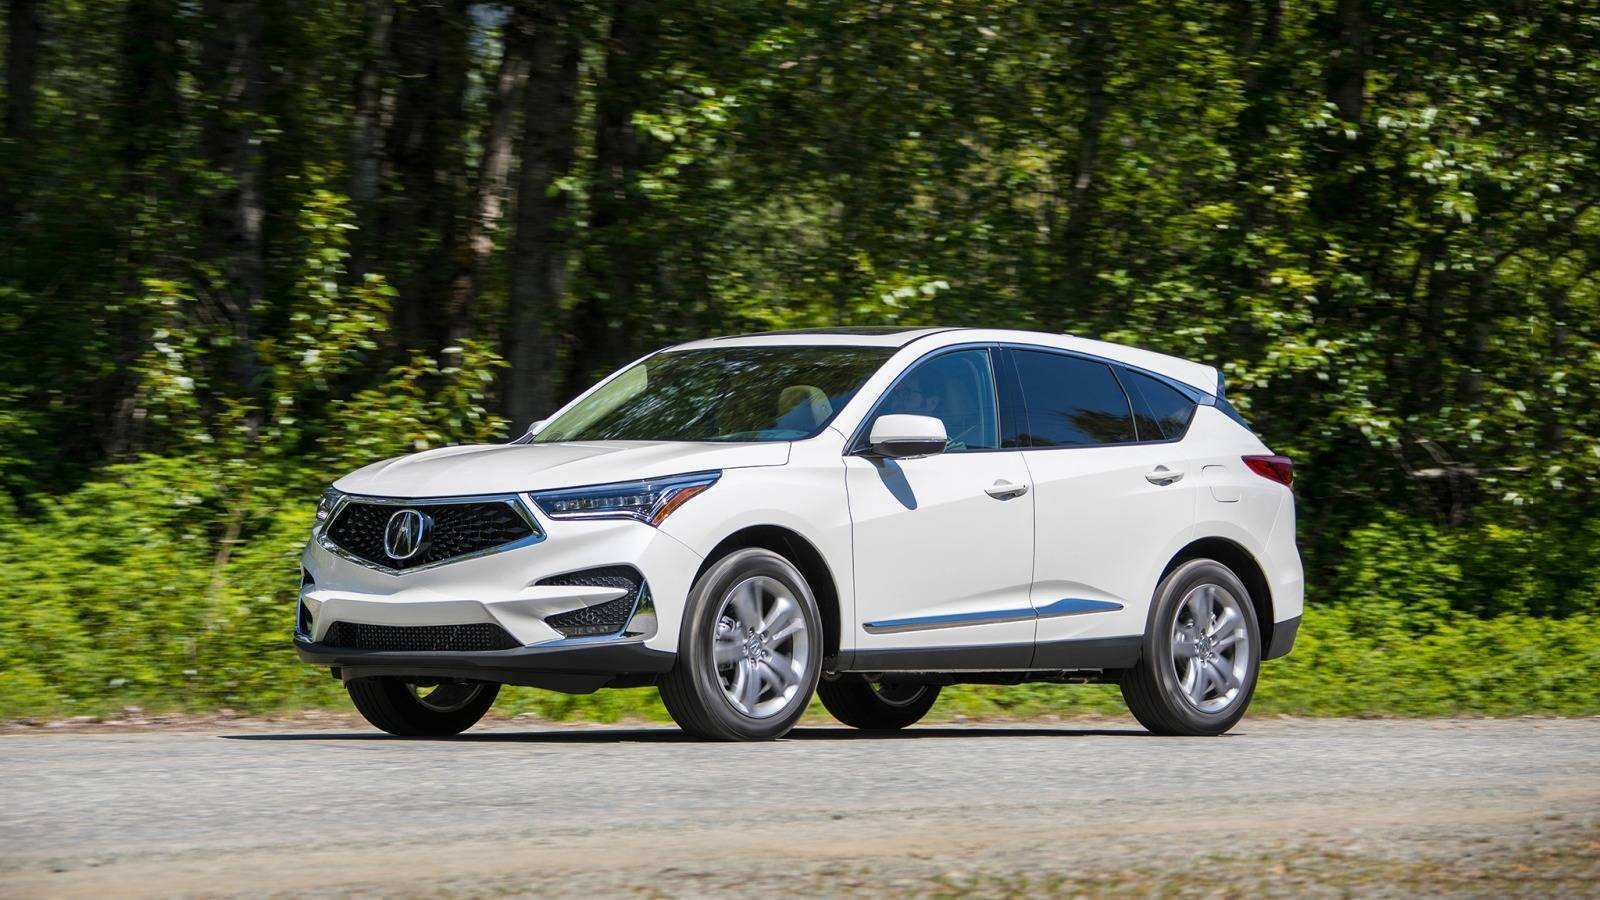 77 Gallery of 2019 Acura Rdx Rumors New Concept by 2019 Acura Rdx Rumors